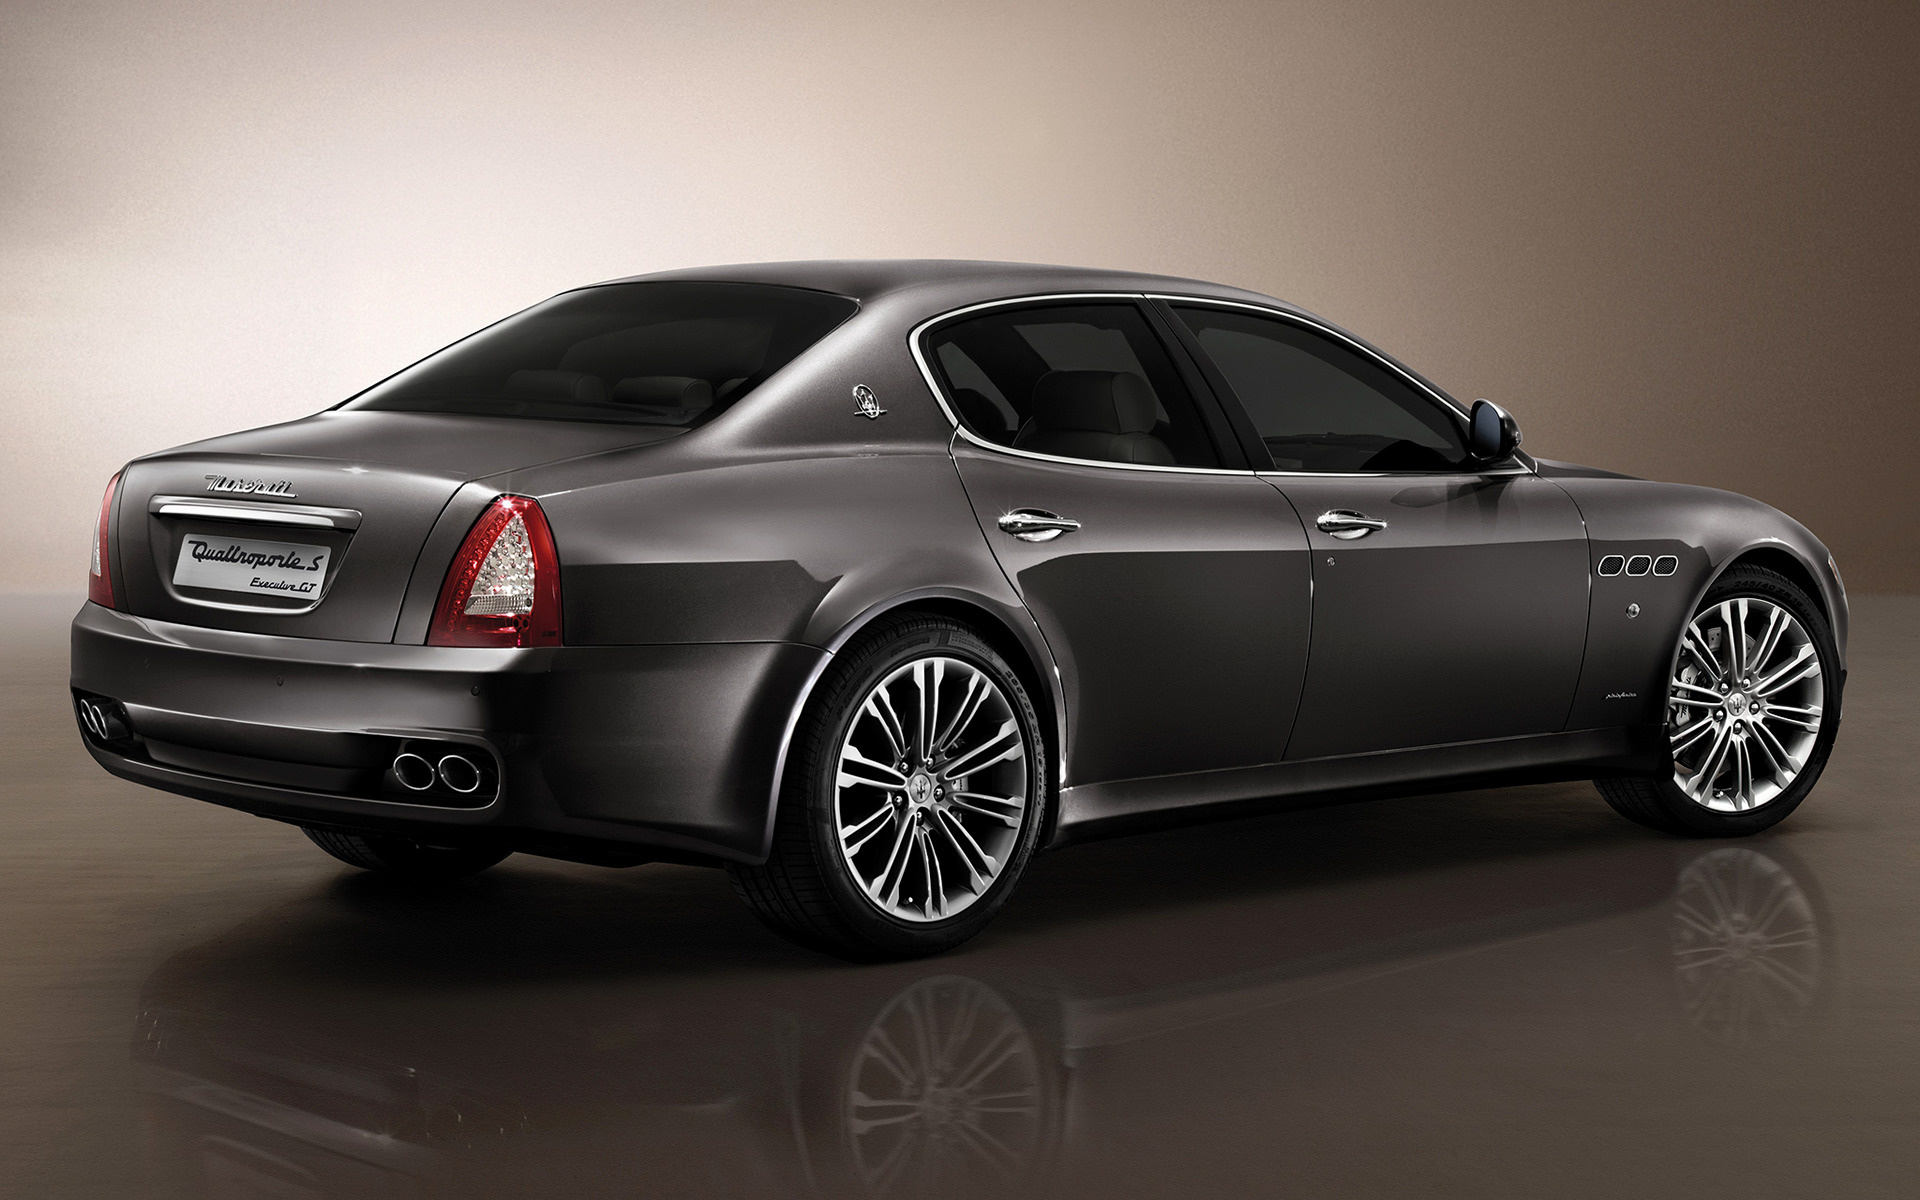 Maserati quattroporte executive gt 2009 wallpapers and hd images wide 85 sciox Choice Image